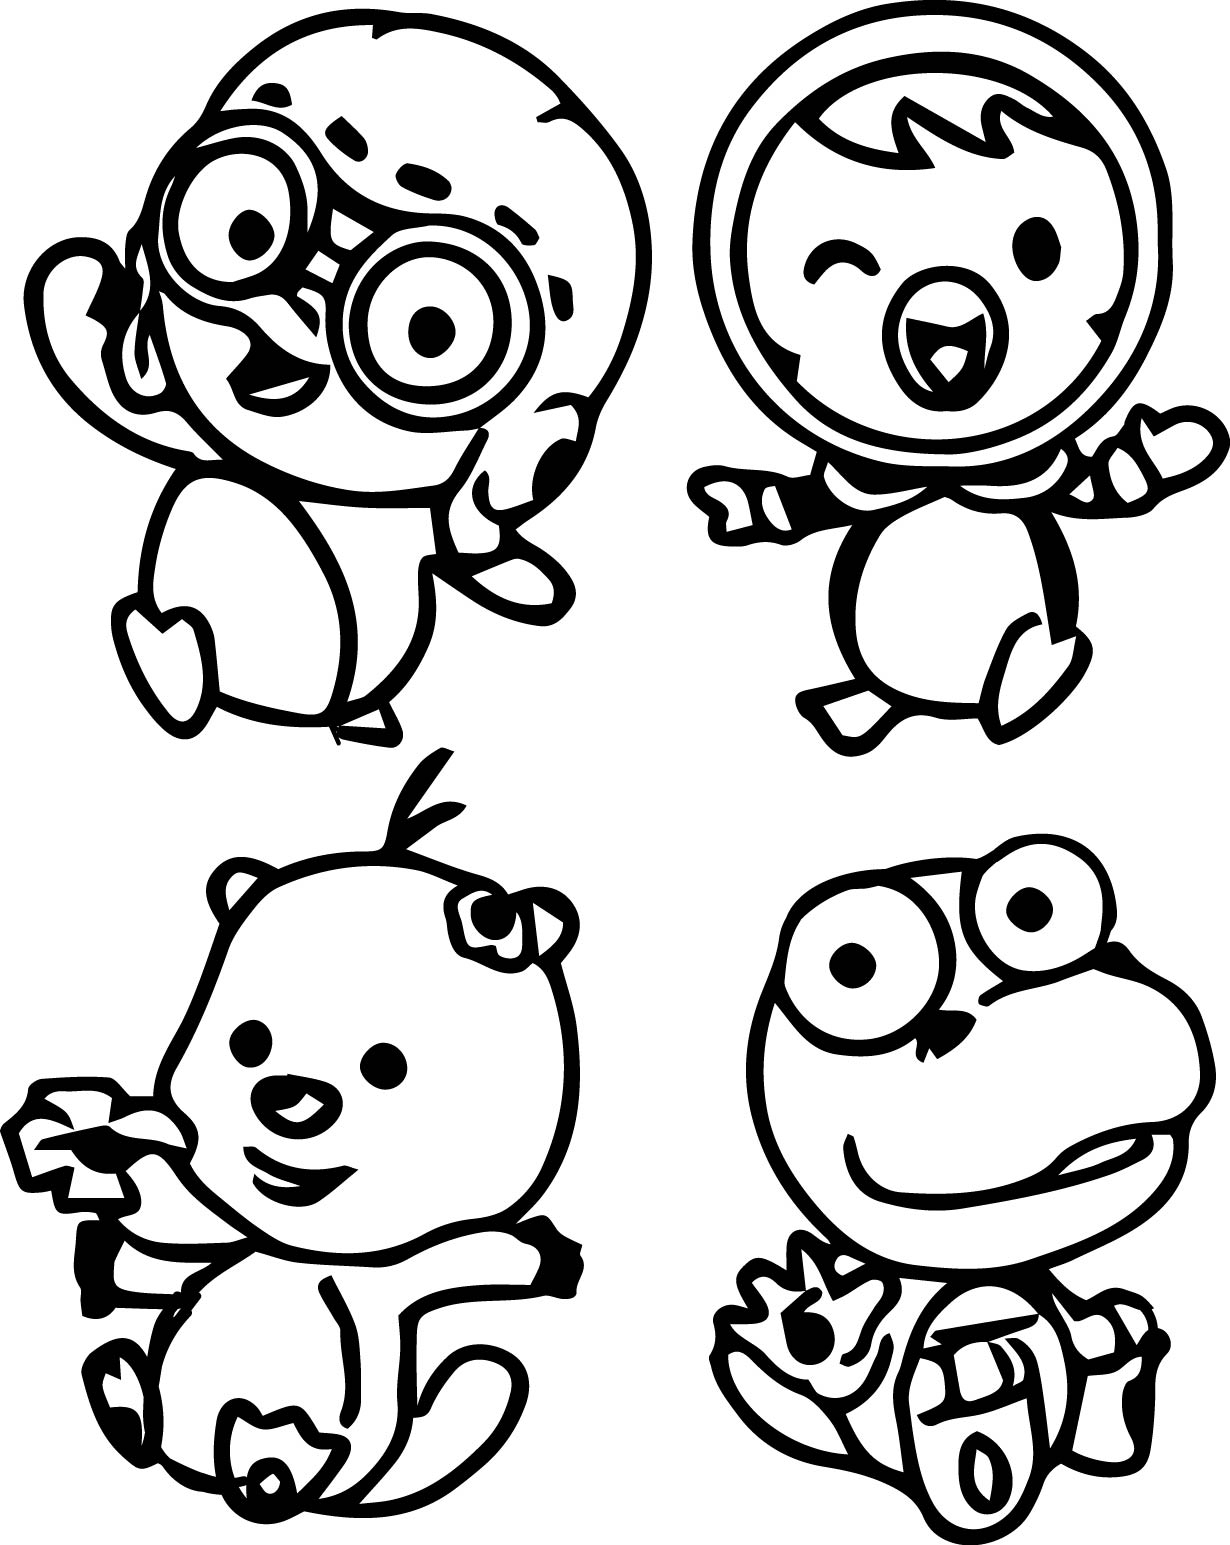 ball coloring pages - coloriagepersonnagespororo